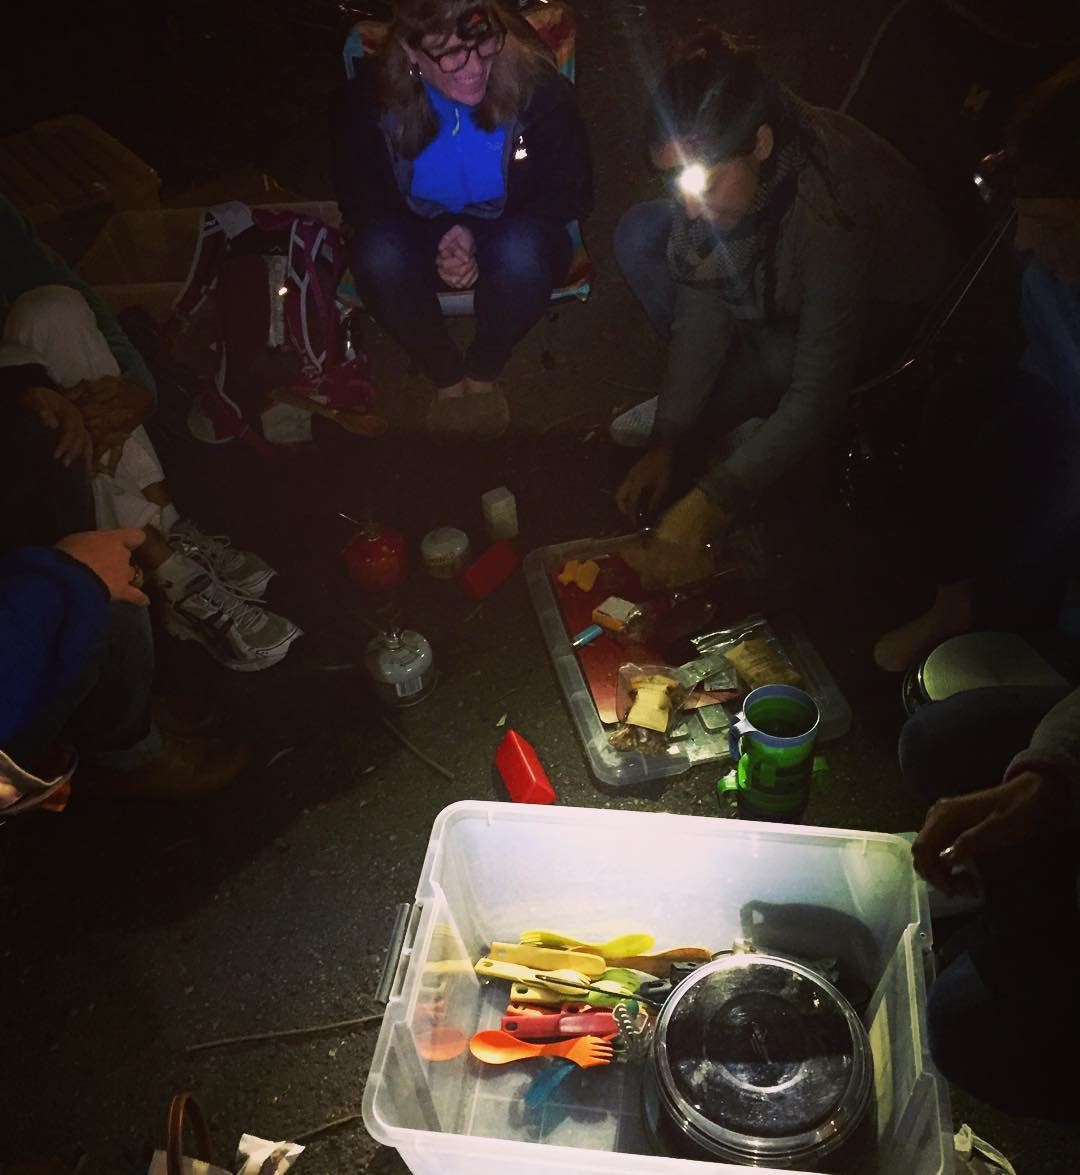 Met up with some stoked ladies last night and learned some new camp stove techniques courtesy of @trailmavens (who do a great job of bringing together & empowering women to explore, connect, and hone their adventure skills). Then we used our new skills...